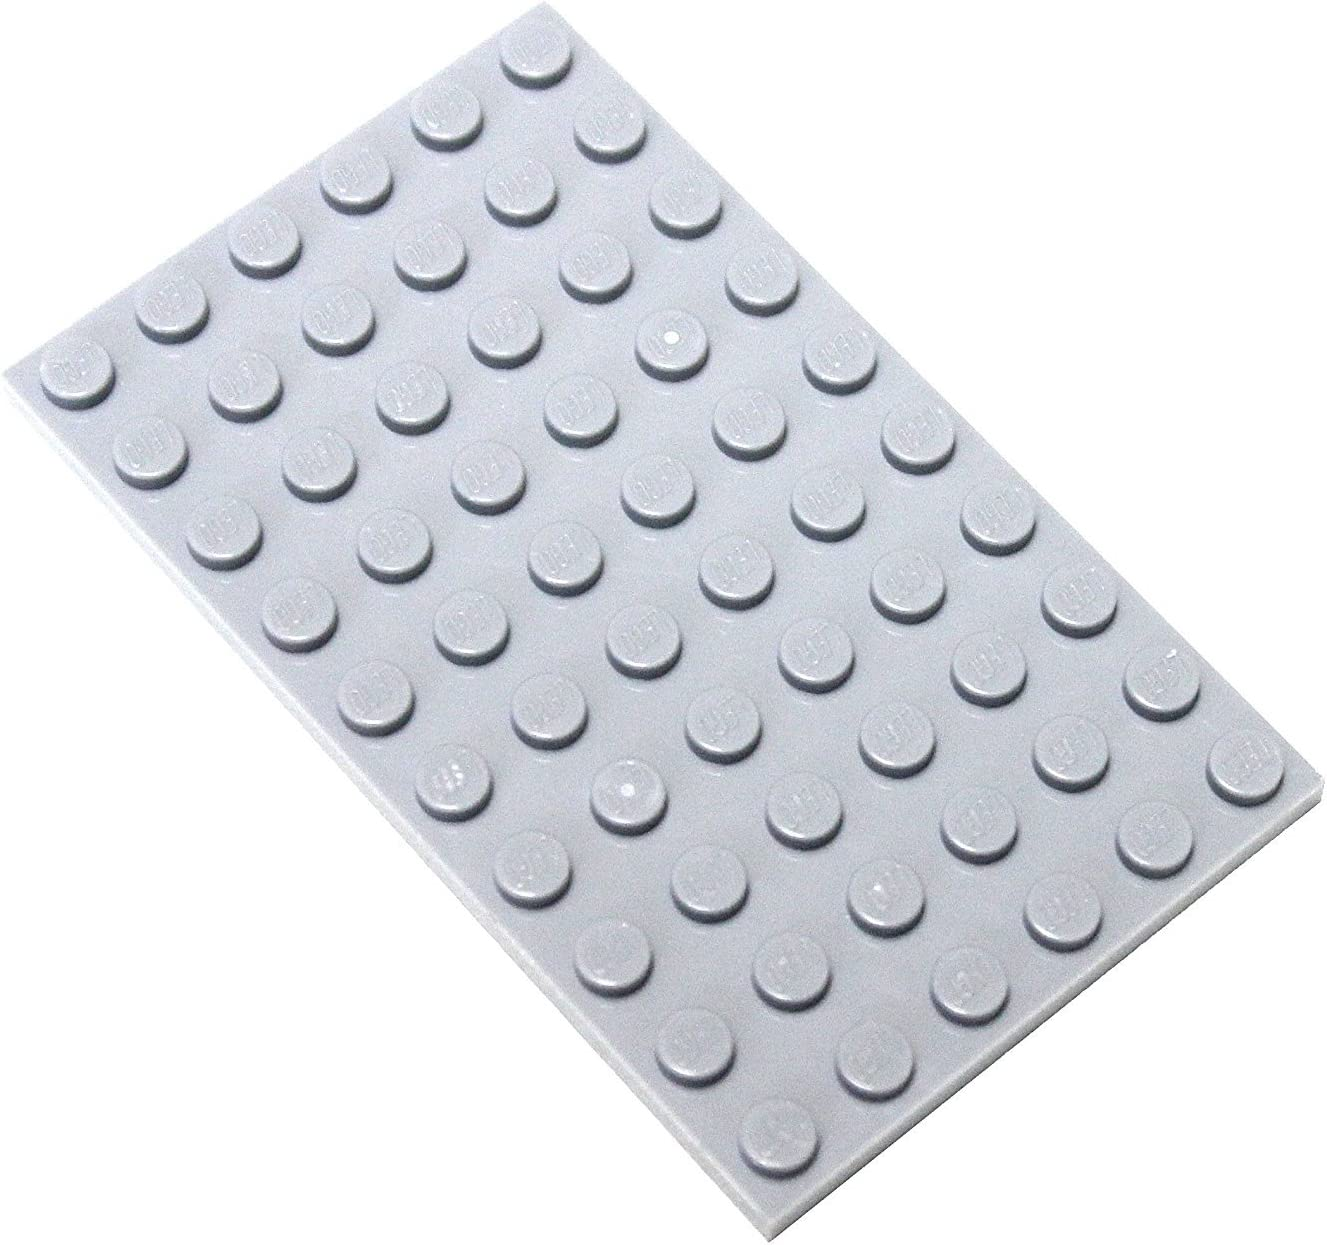 LEGO Parts and Pieces: Light Gray (Medium Stone Grey) 6x10 Plate x10